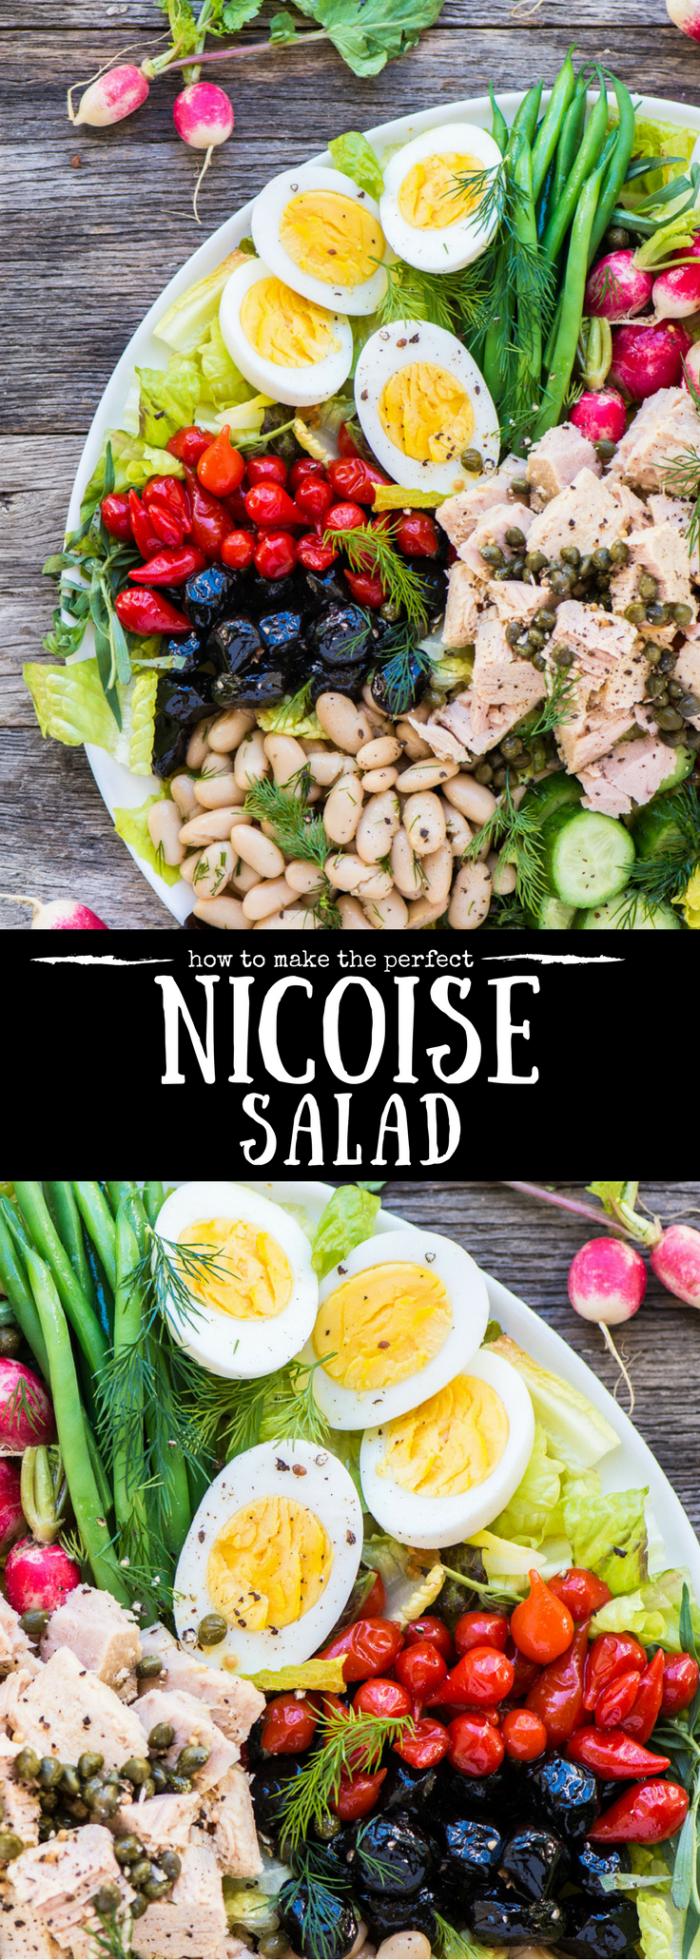 How to Make the Perfect Niçoise Salad ~ this healthy main course salad is one of the best ever invented... it's colorful, protein packed, and so satisfying. #tuna #cannedtuna #paleo #whole30 #glutenfree #lunch #dinner #salad #French #maincoursesalad #beans